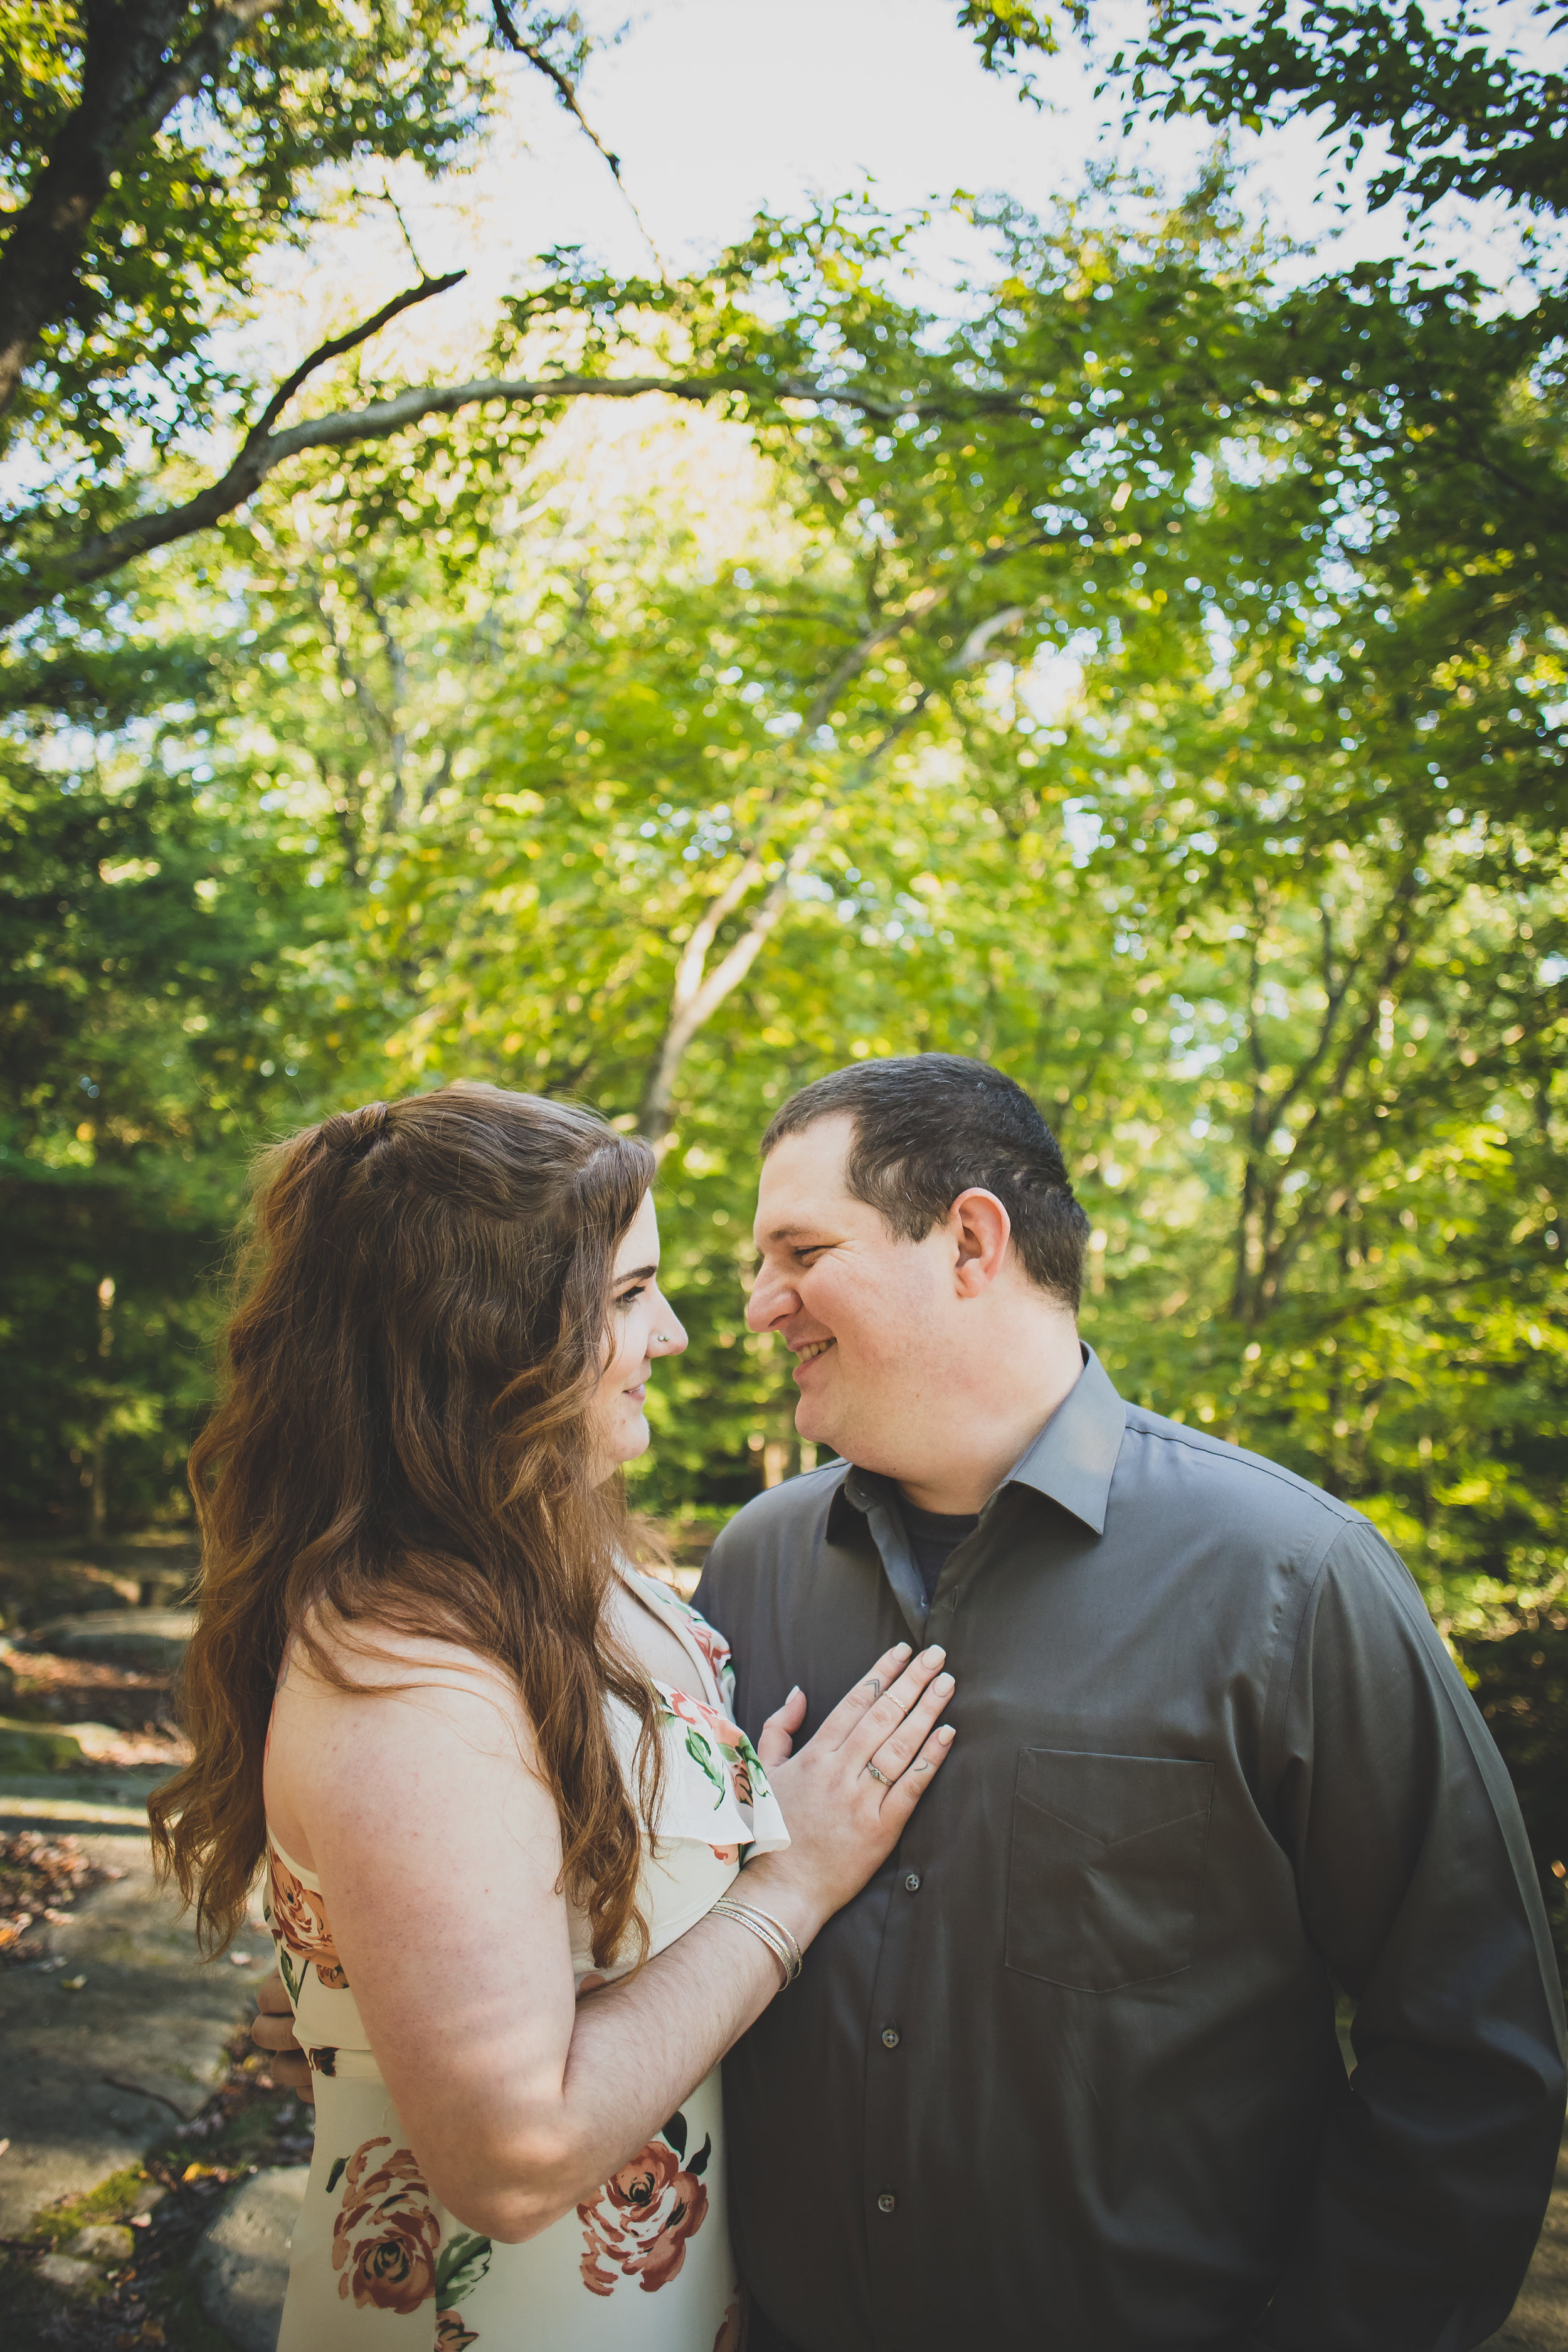 Michelle Carter Photography-Engagement Photography-Cuyahoga Valley National Park-32.jpg